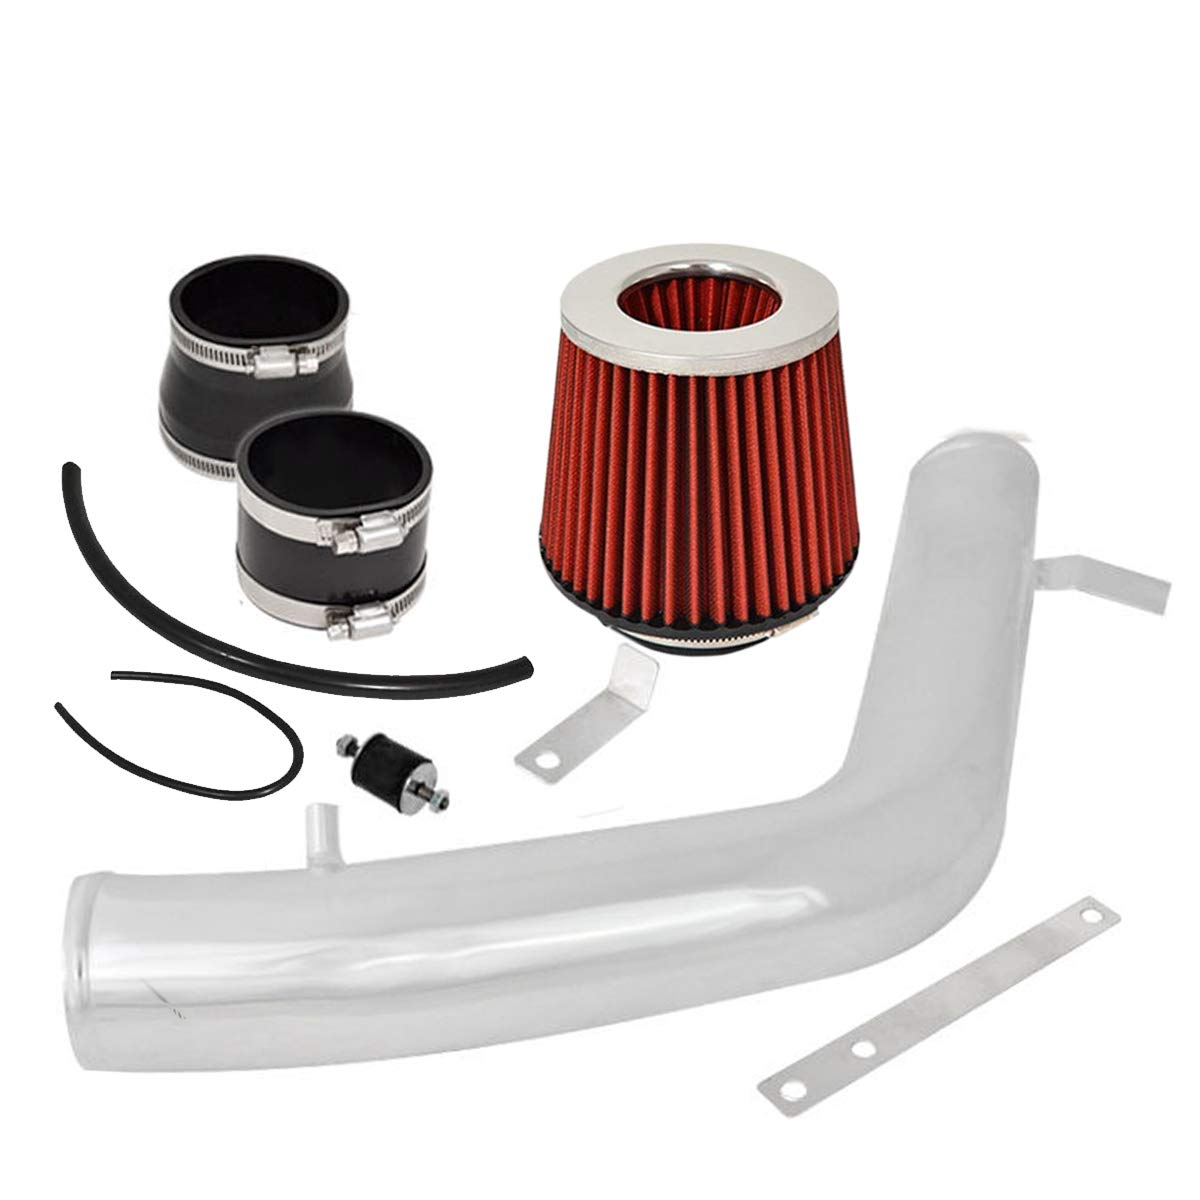 3 Inch Aluminum High Flow Cold Air Intake System Polish Pipe with Air Filter Red For 2003-2007 Honda Accord 3.0L V6 Engine Only